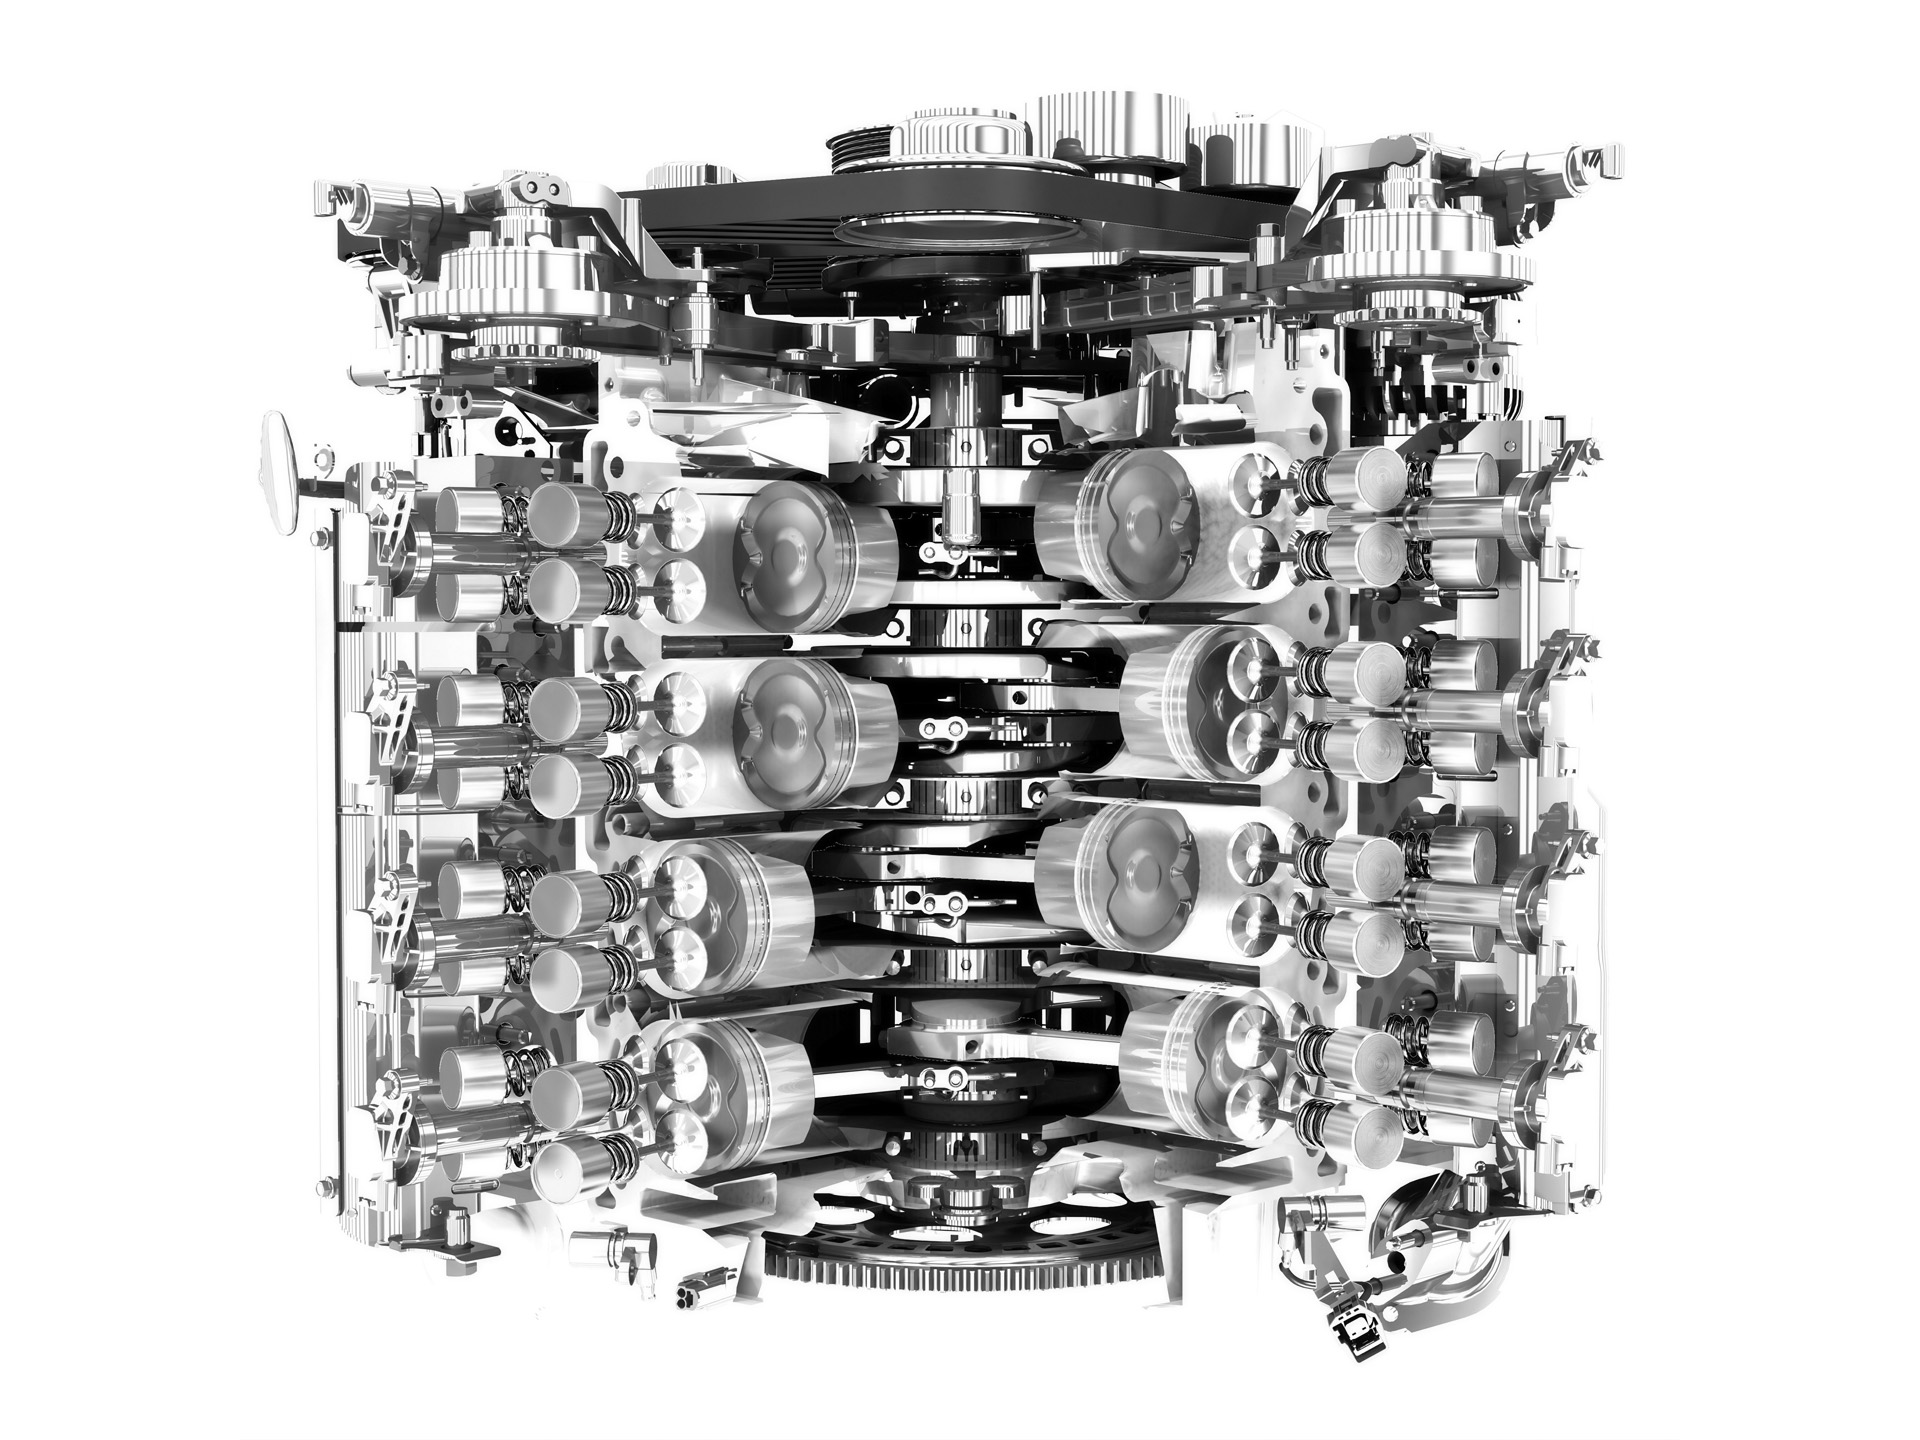 Sample C1140 Engine